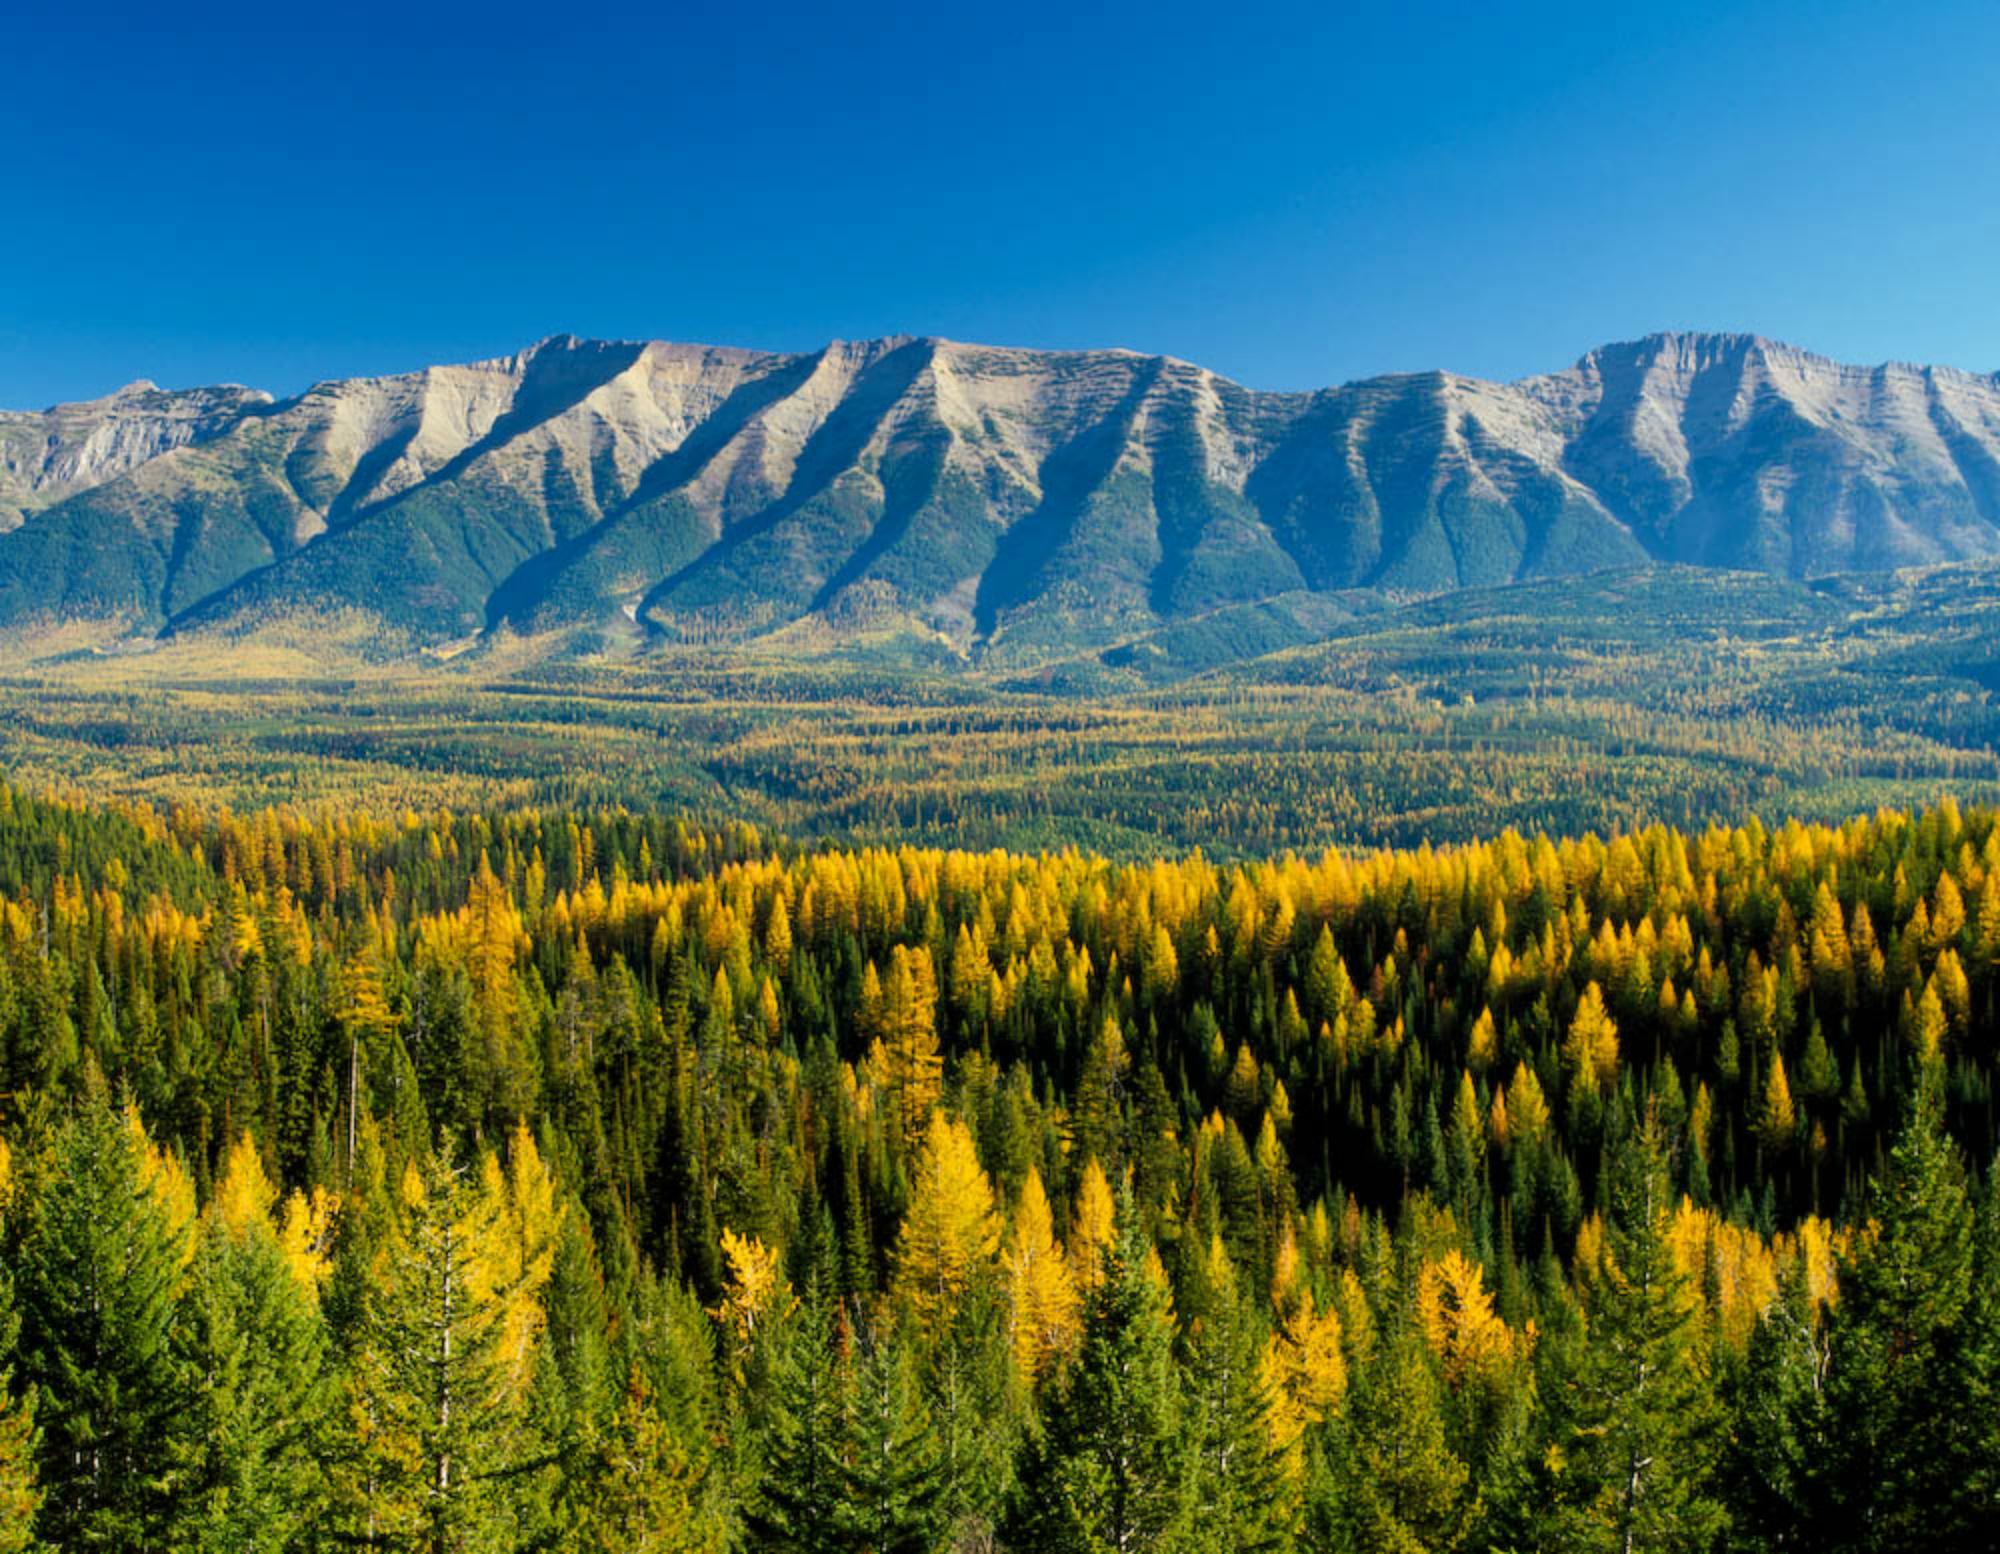 Larch trees turn yellow in a heavily forested valley beneath the Swan Mountains.